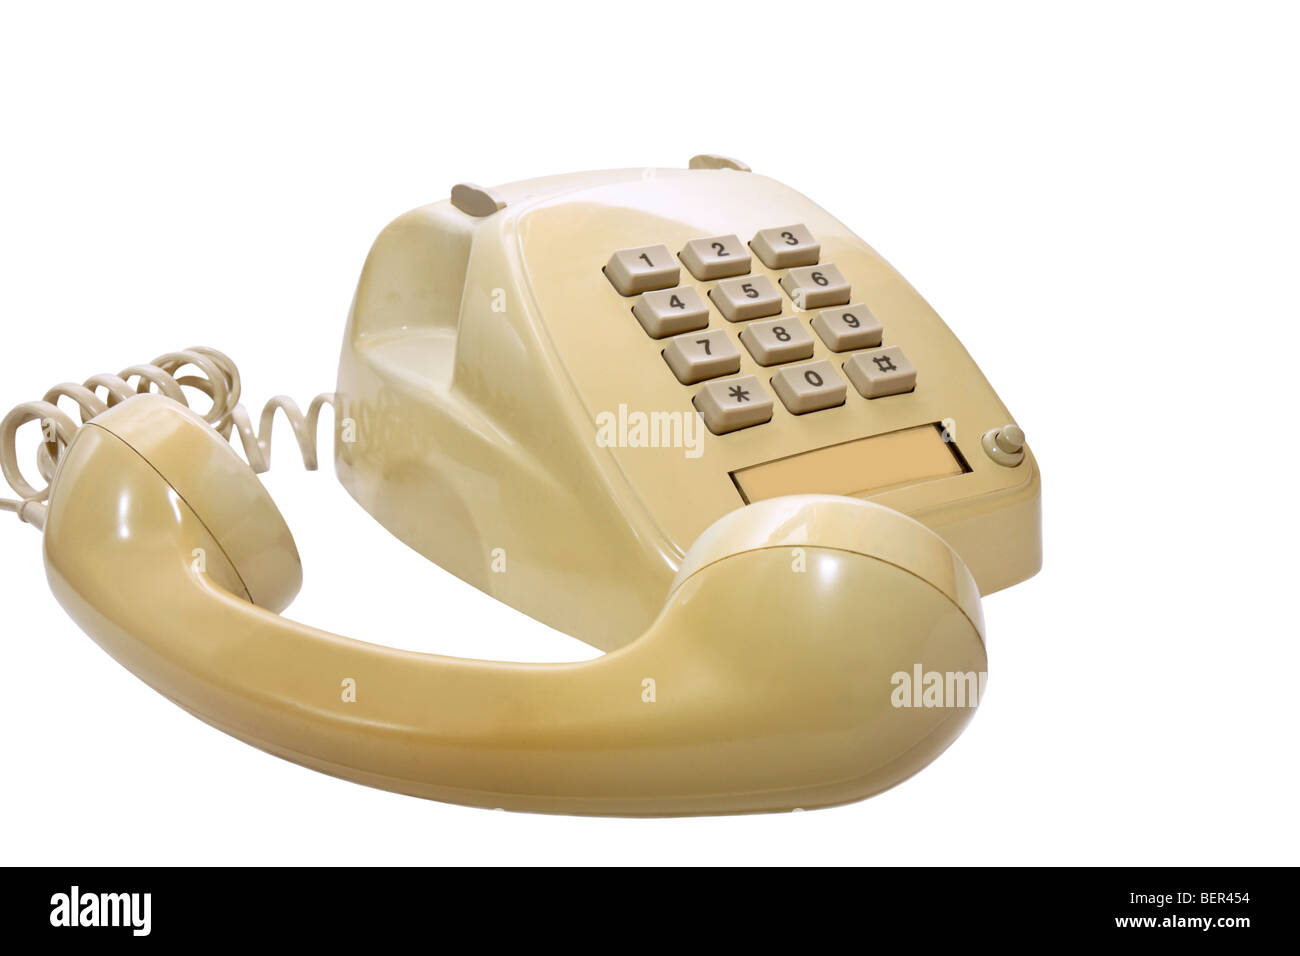 the yellow telephone with take away receiver for a  connection people Stock Photo